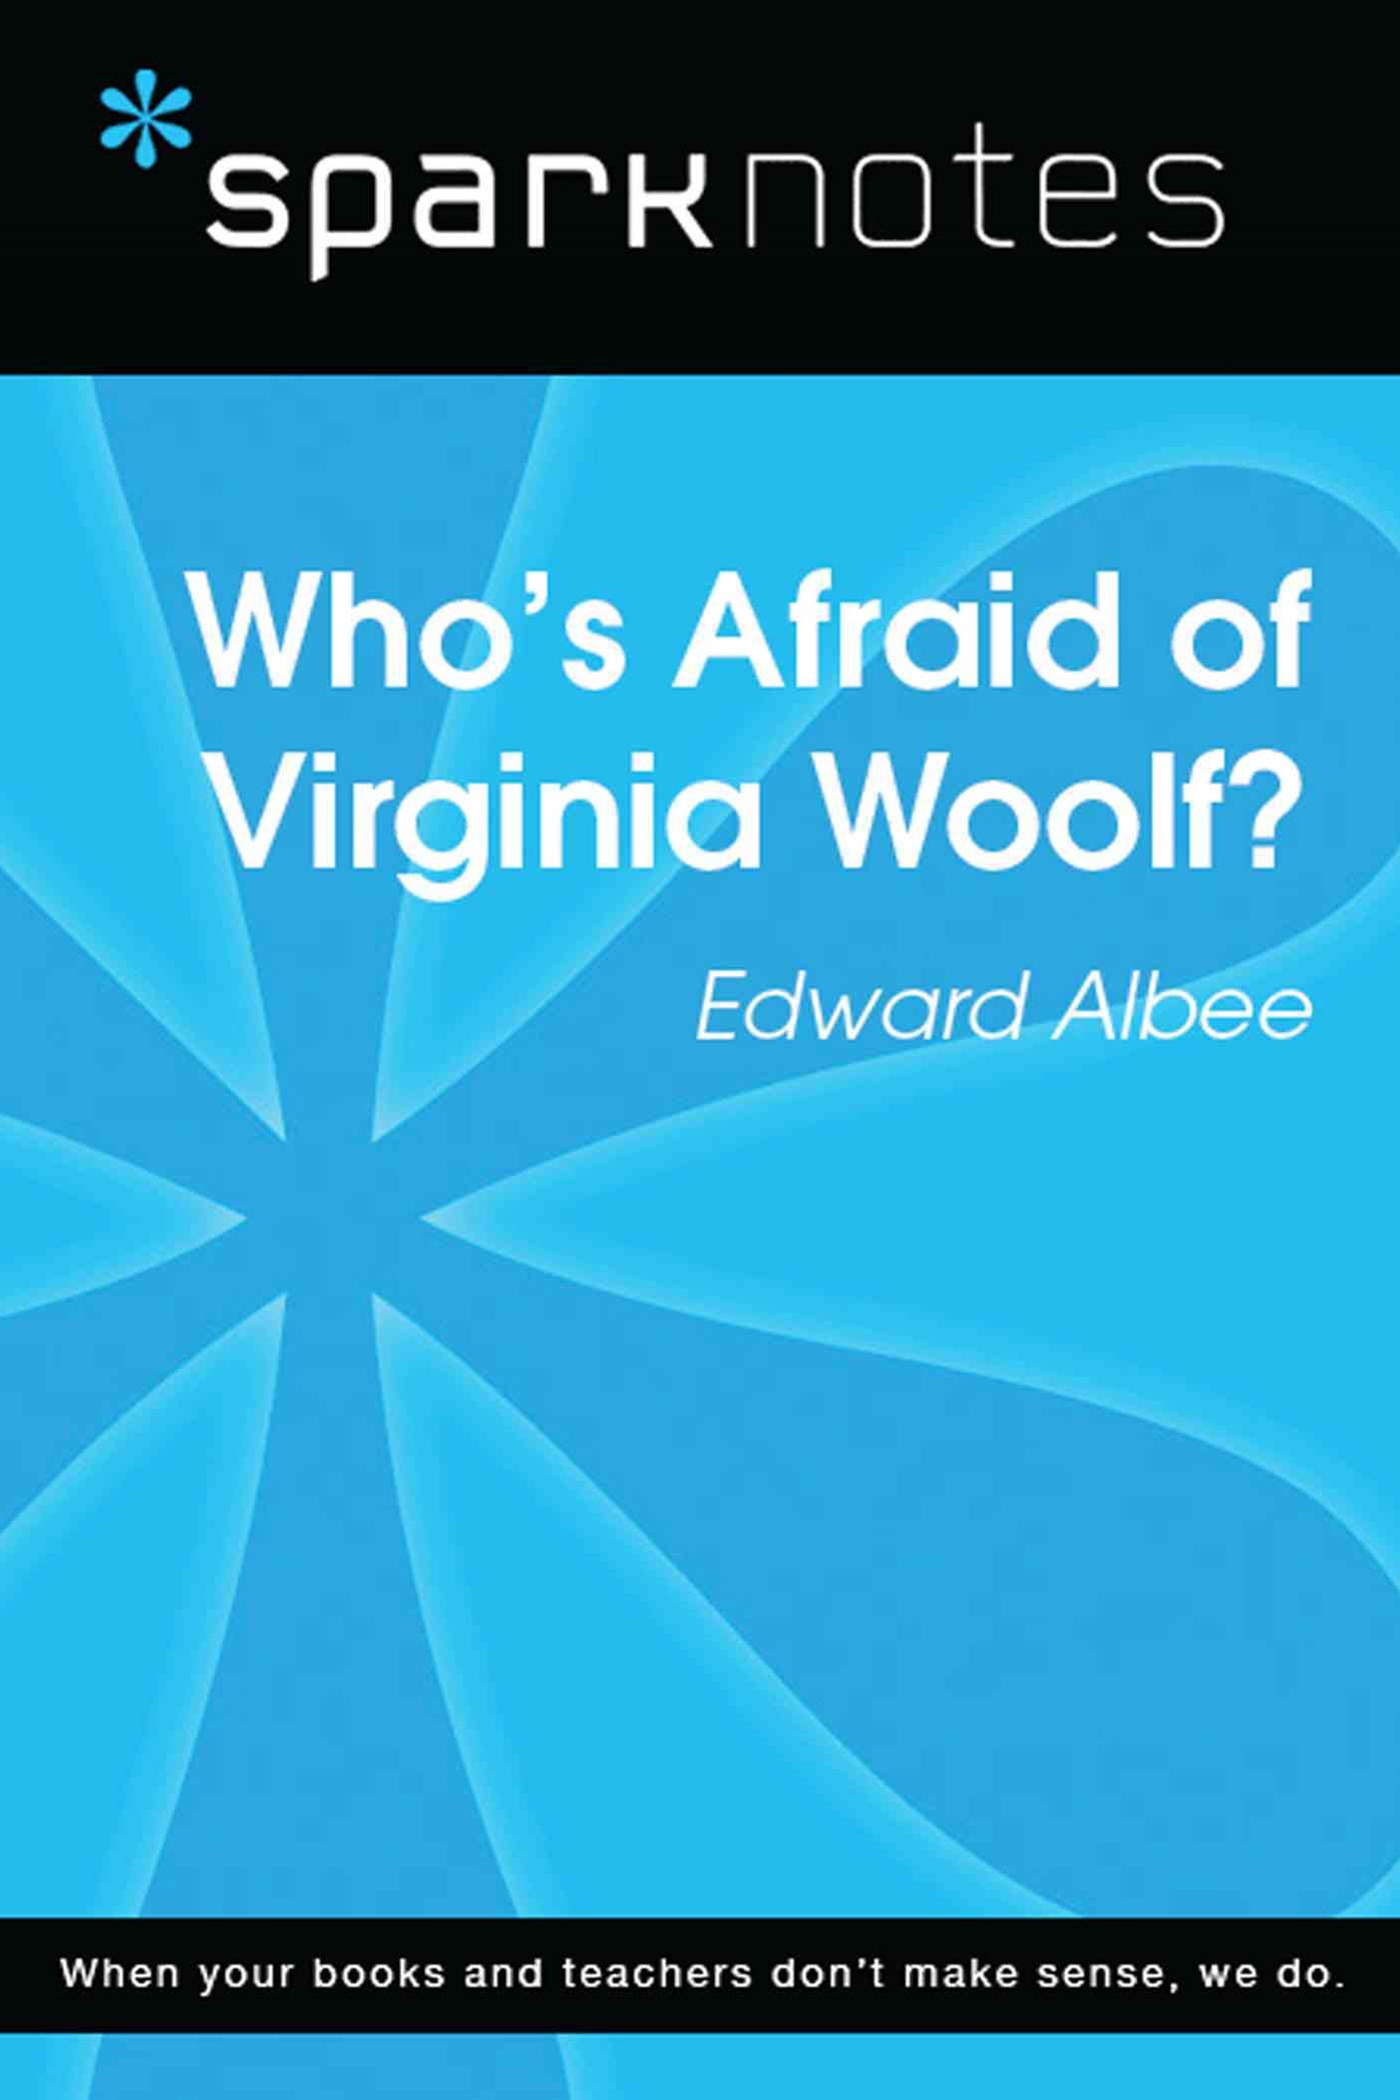 Who's Afraid of Virginia Woolf (SparkNotes Literature Guide)